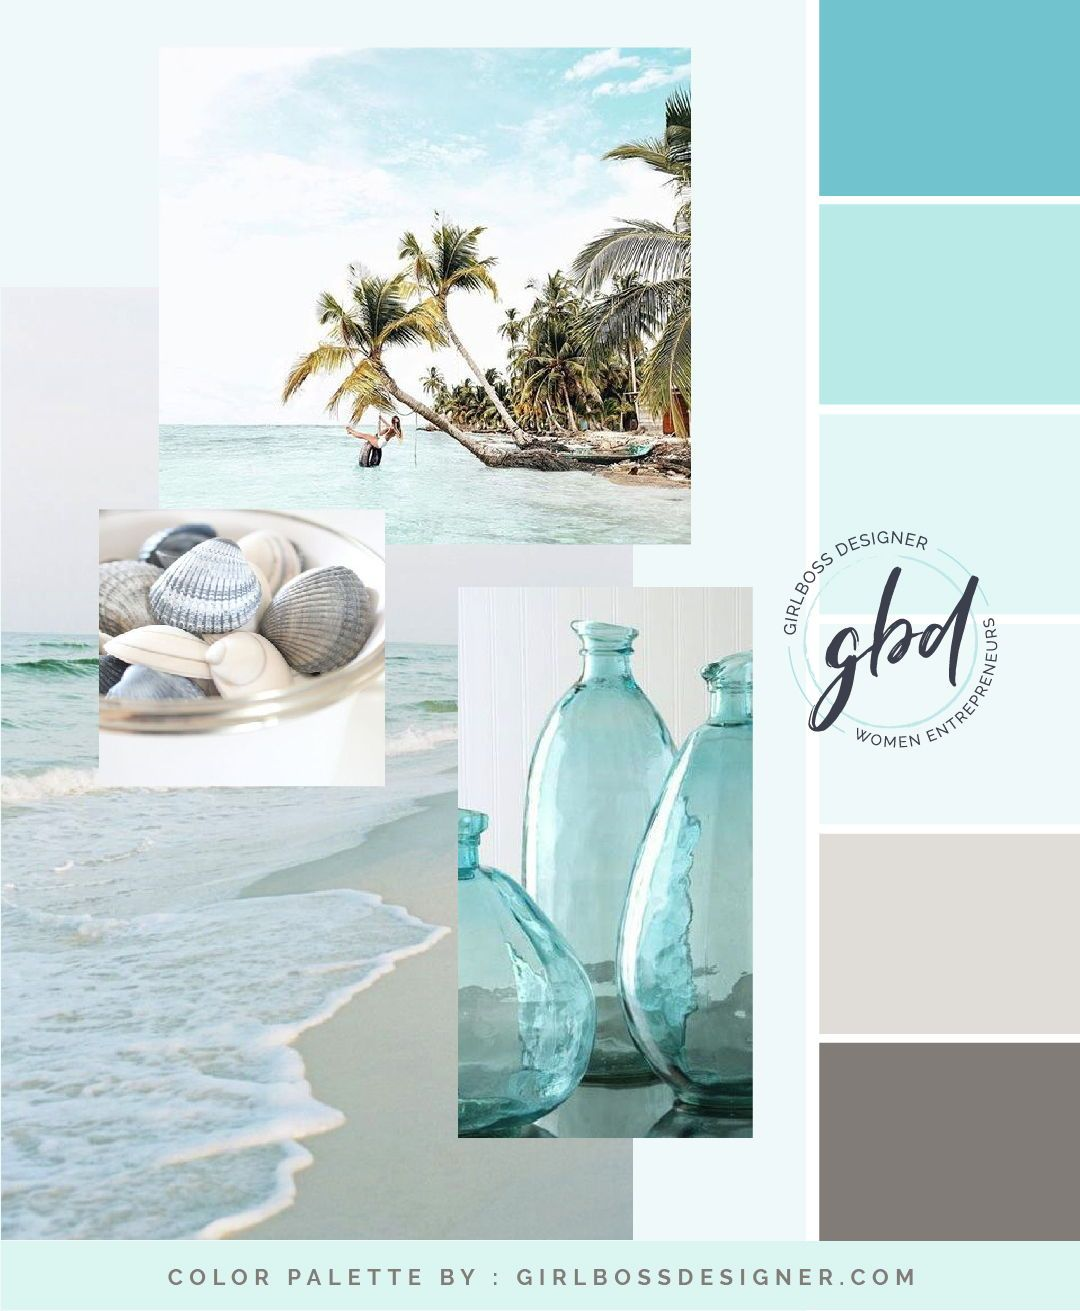 Pastel turquoise color palette mood board for network marketing leader in Rodan + Fields by Girlboss Designer #colorpalette #beachy #turquoise #aqua #beachstyle #branddesign #girlbossdesigner #girlboss #ladyboss #theeverygirl #rodanandfields #consultant #goaldigger #moodboards